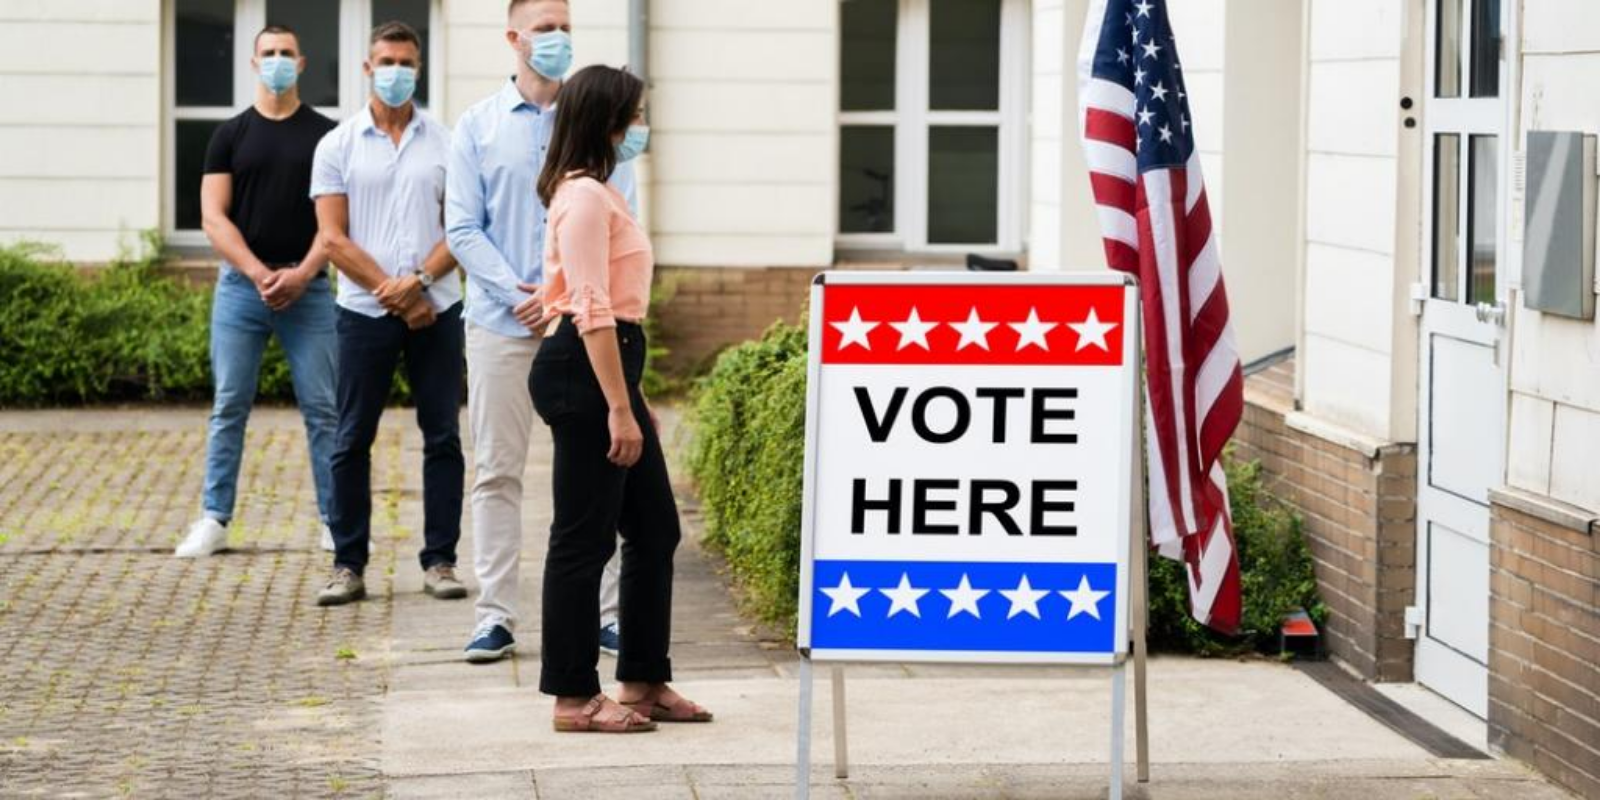 Voting systems in key states known to be rife with problems and backed by Democrat lobbyists